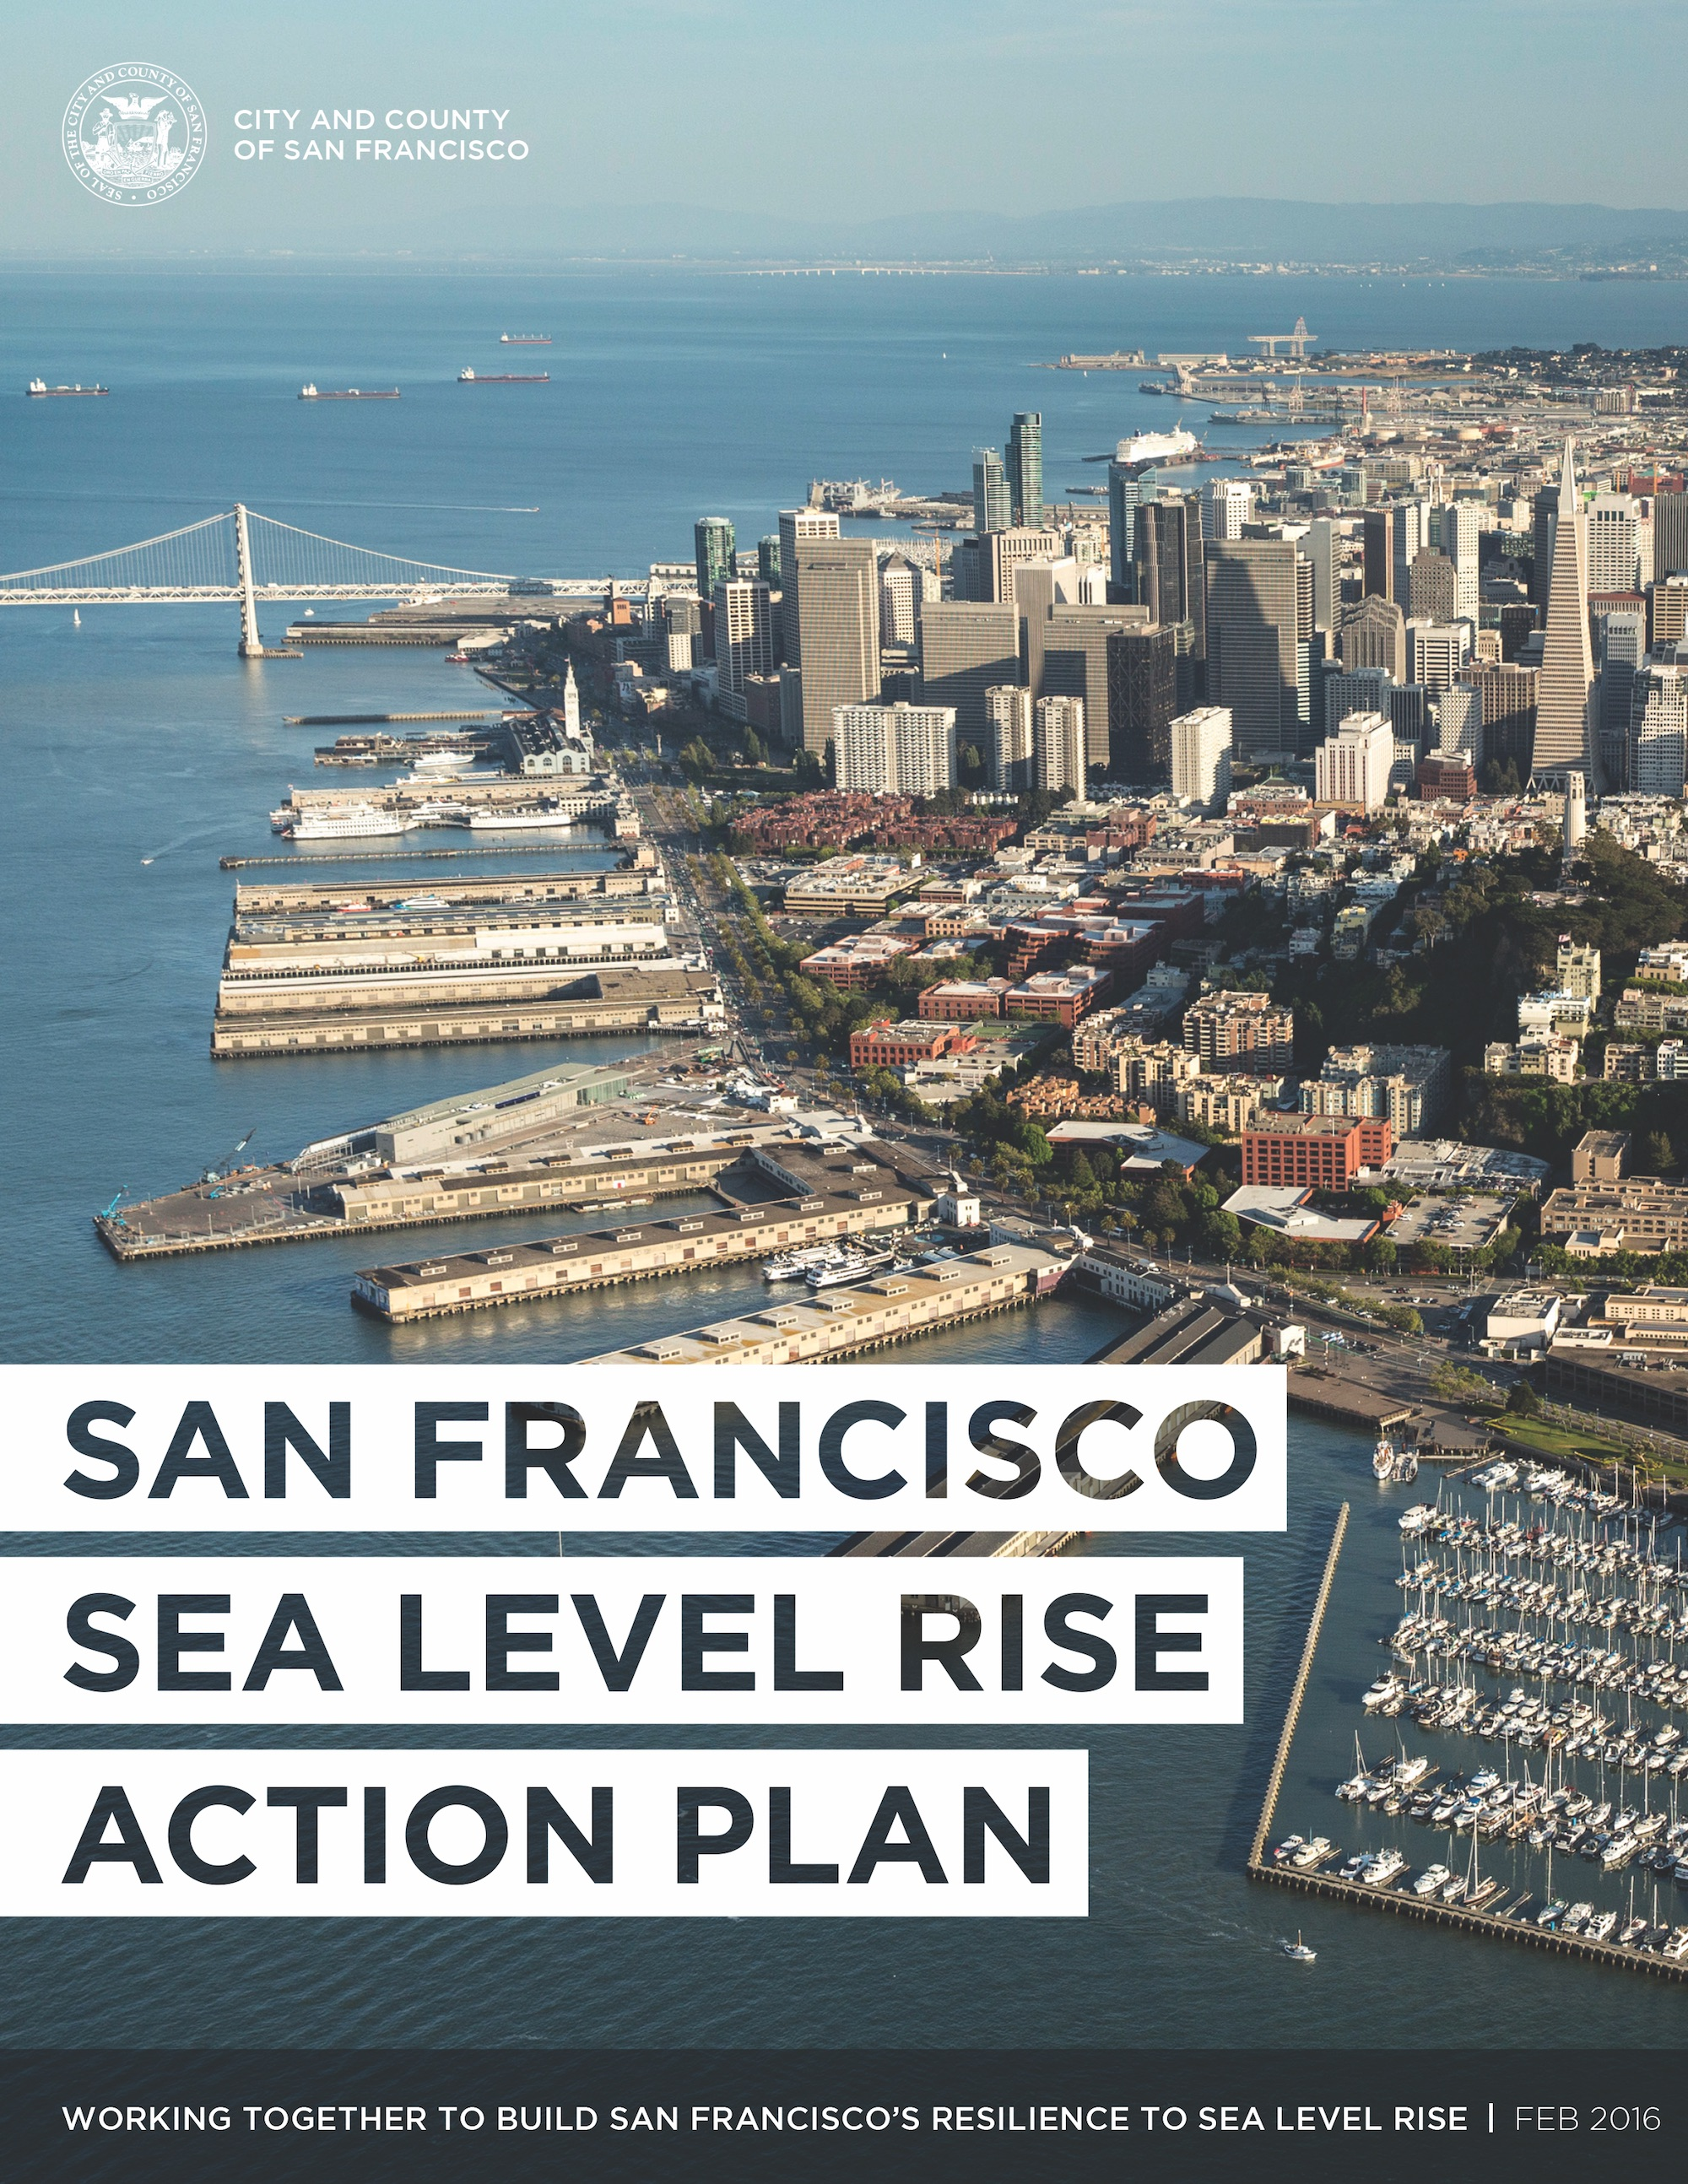 The Recently Published Sea Level Rise Action Plan